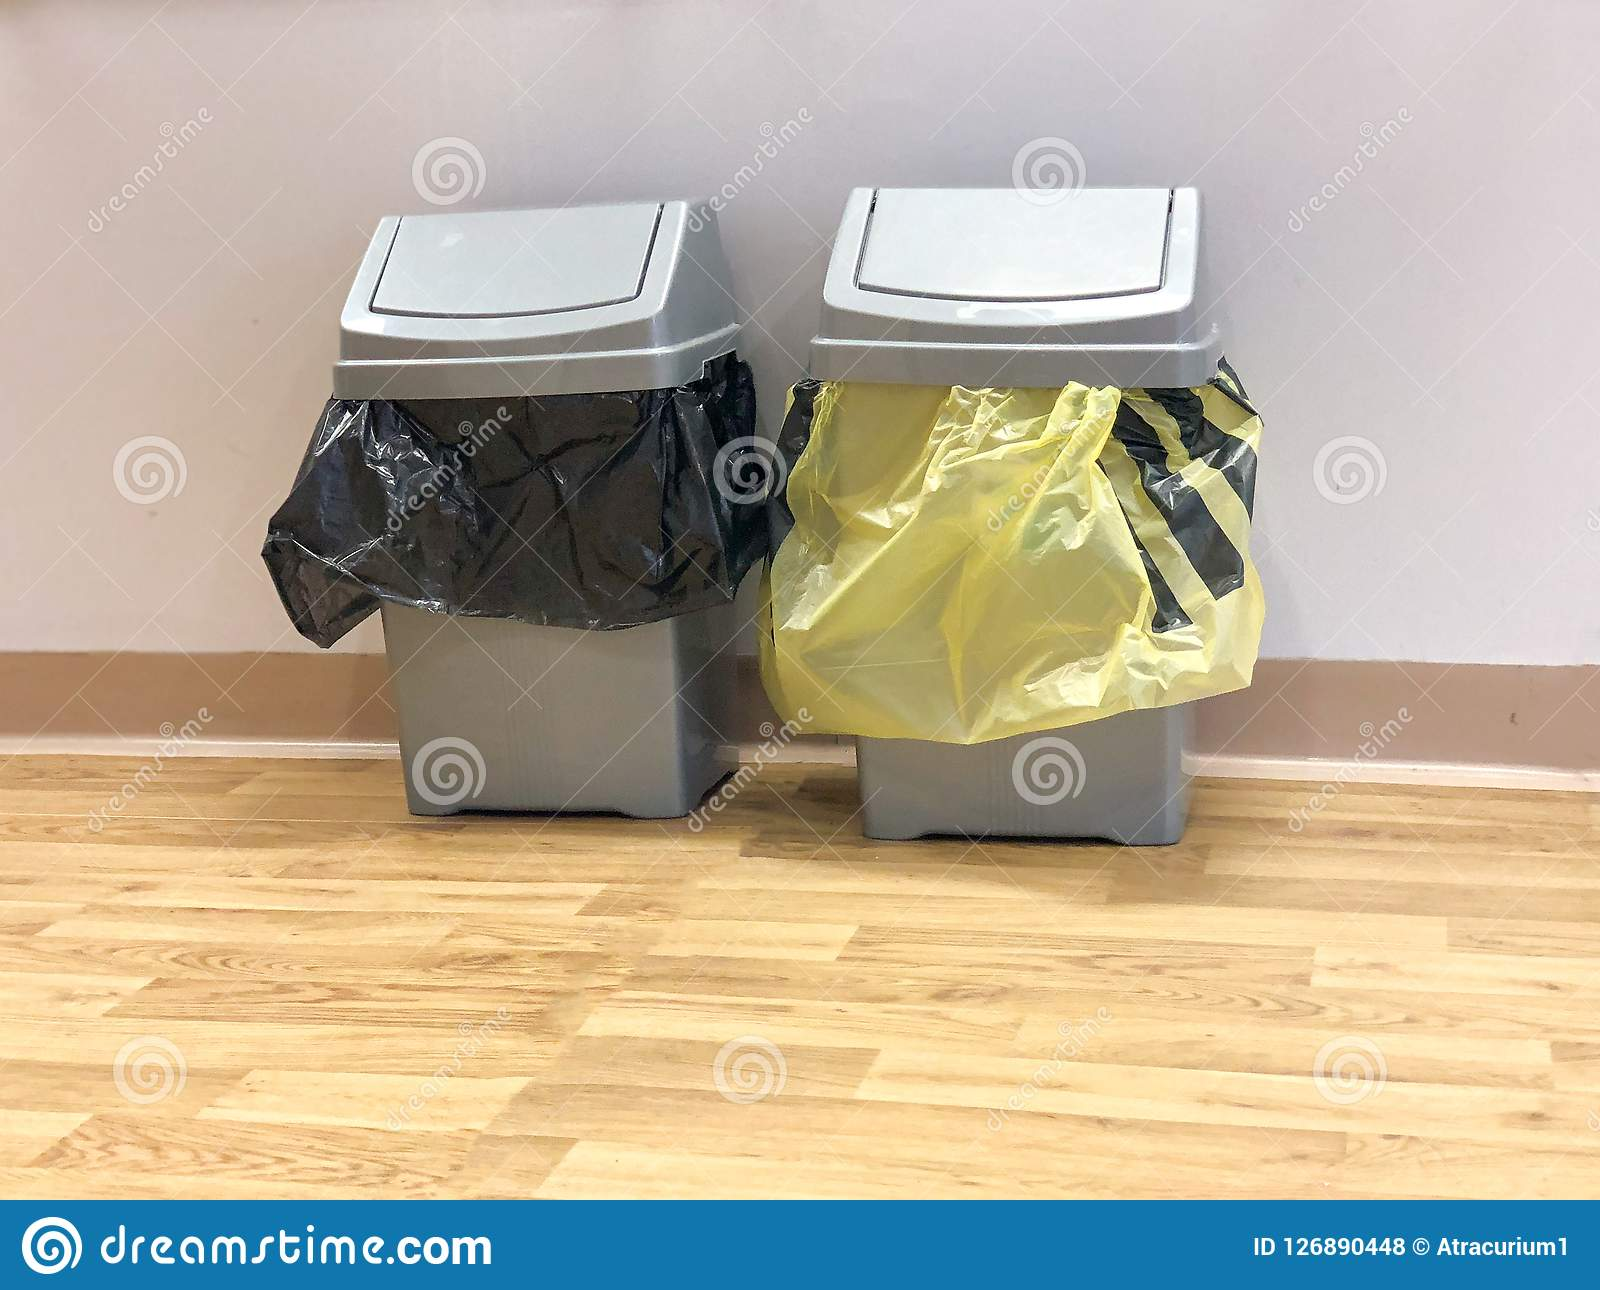 Clinical And Non Clinical Bins  Stock Photo - Image of